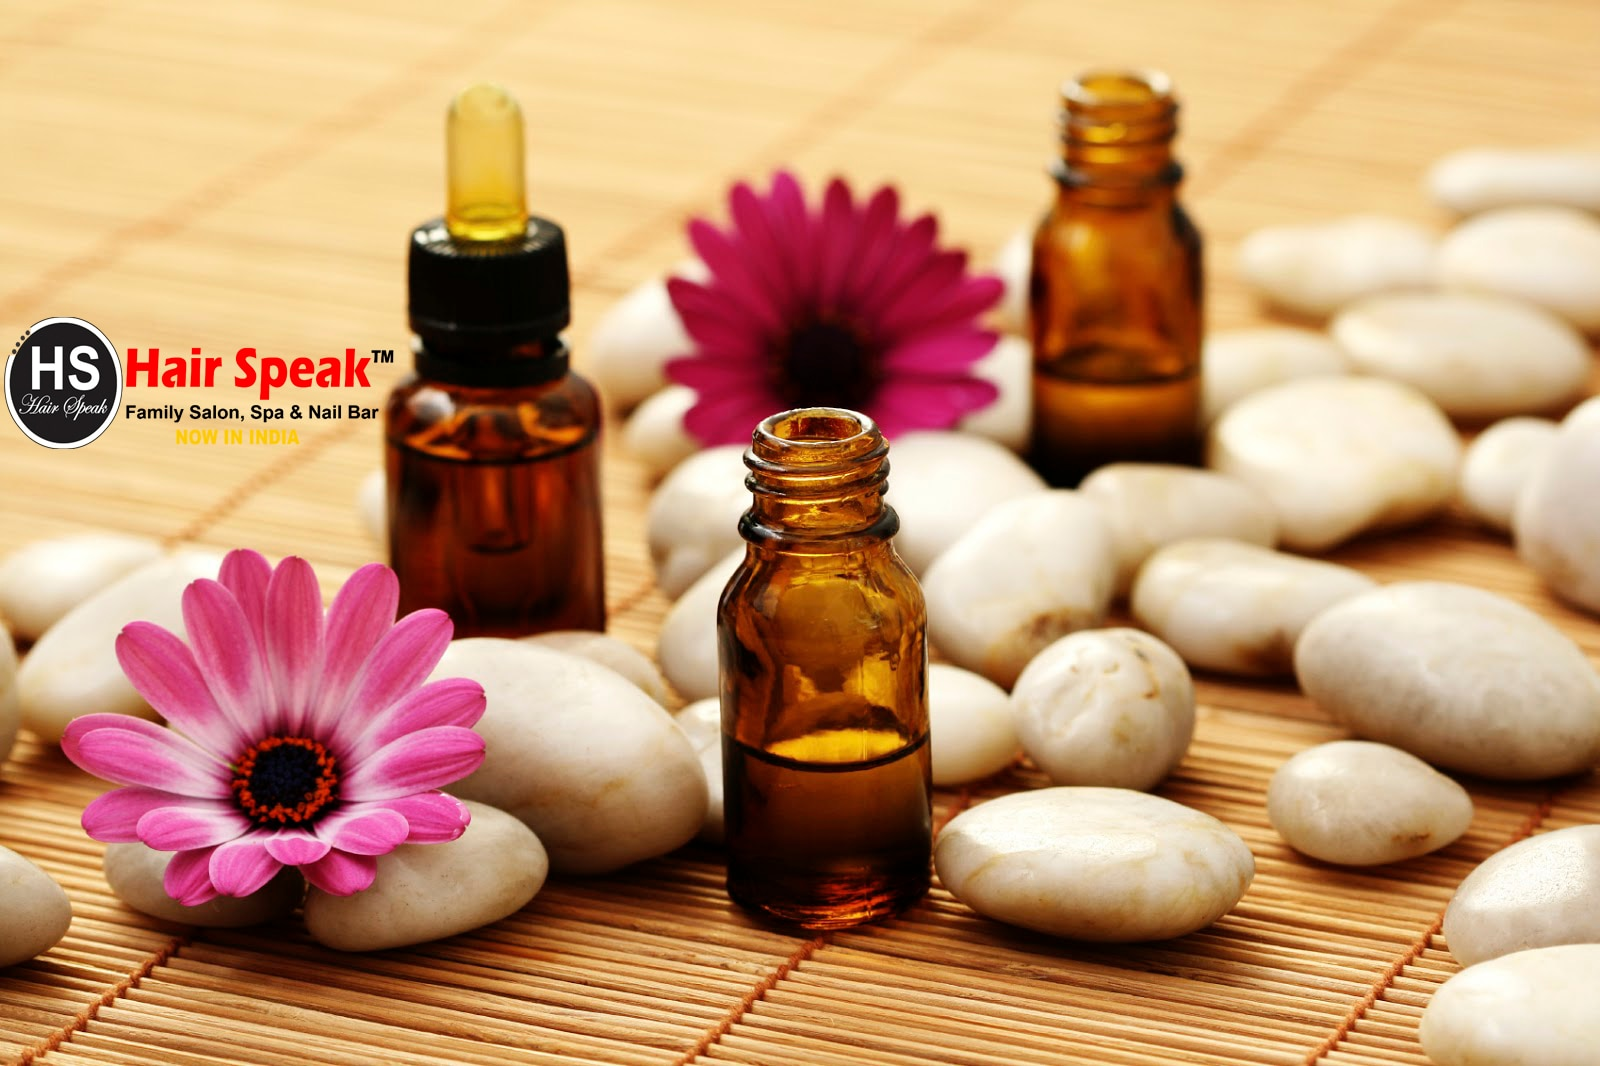 Aroma body massage plus steam bath starts from 499/- only at HAIR SPEAK.Body Massage Spa With Steam For Booking And Enquiries Call us.Relax, Restore & Rejuvenate. Full Body, hand & back massage. Schedule Now, Free Head Massage · Flexible Timing · Exclusively for Women.Aromatherapy massage strengthens the body and supports its healing process.